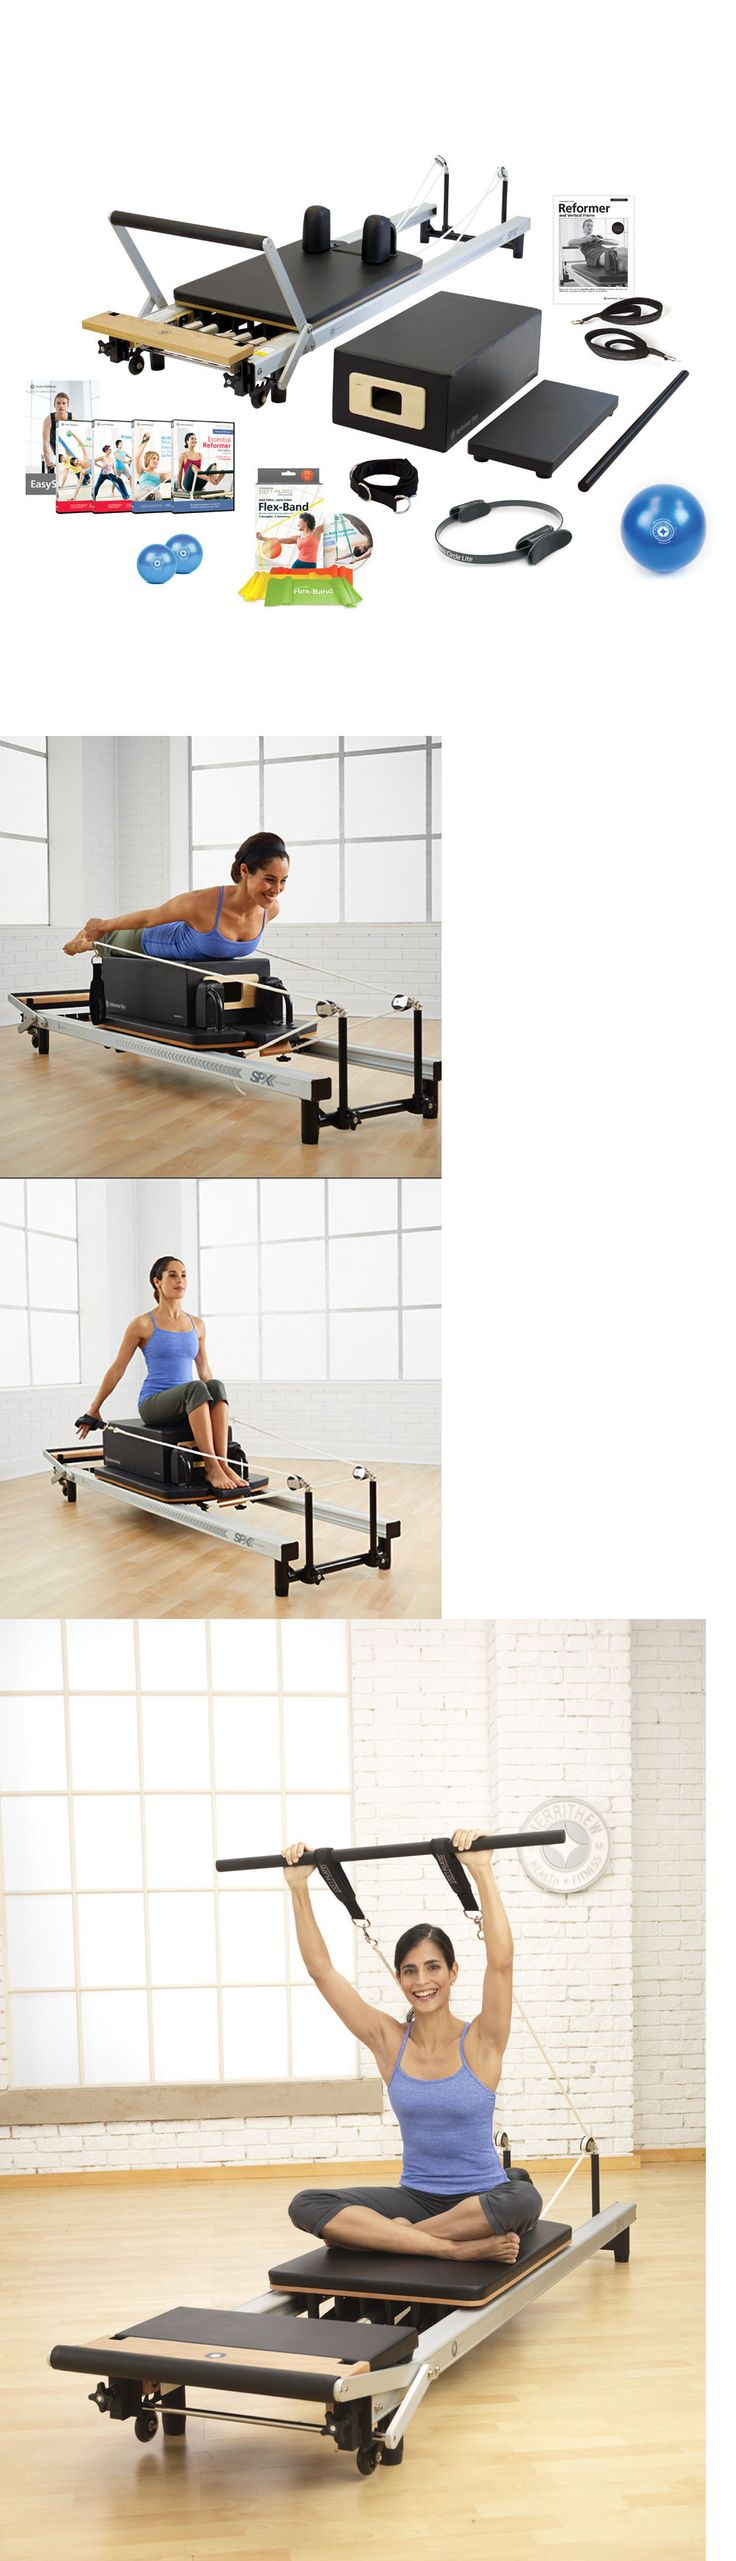 Pilates Tables 179807: Stott Pilates Spx Reformer W/ Free Deluxe Bundle St-11008 | New! -> BUY IT NOW ONLY: $2549.0 on eBay!